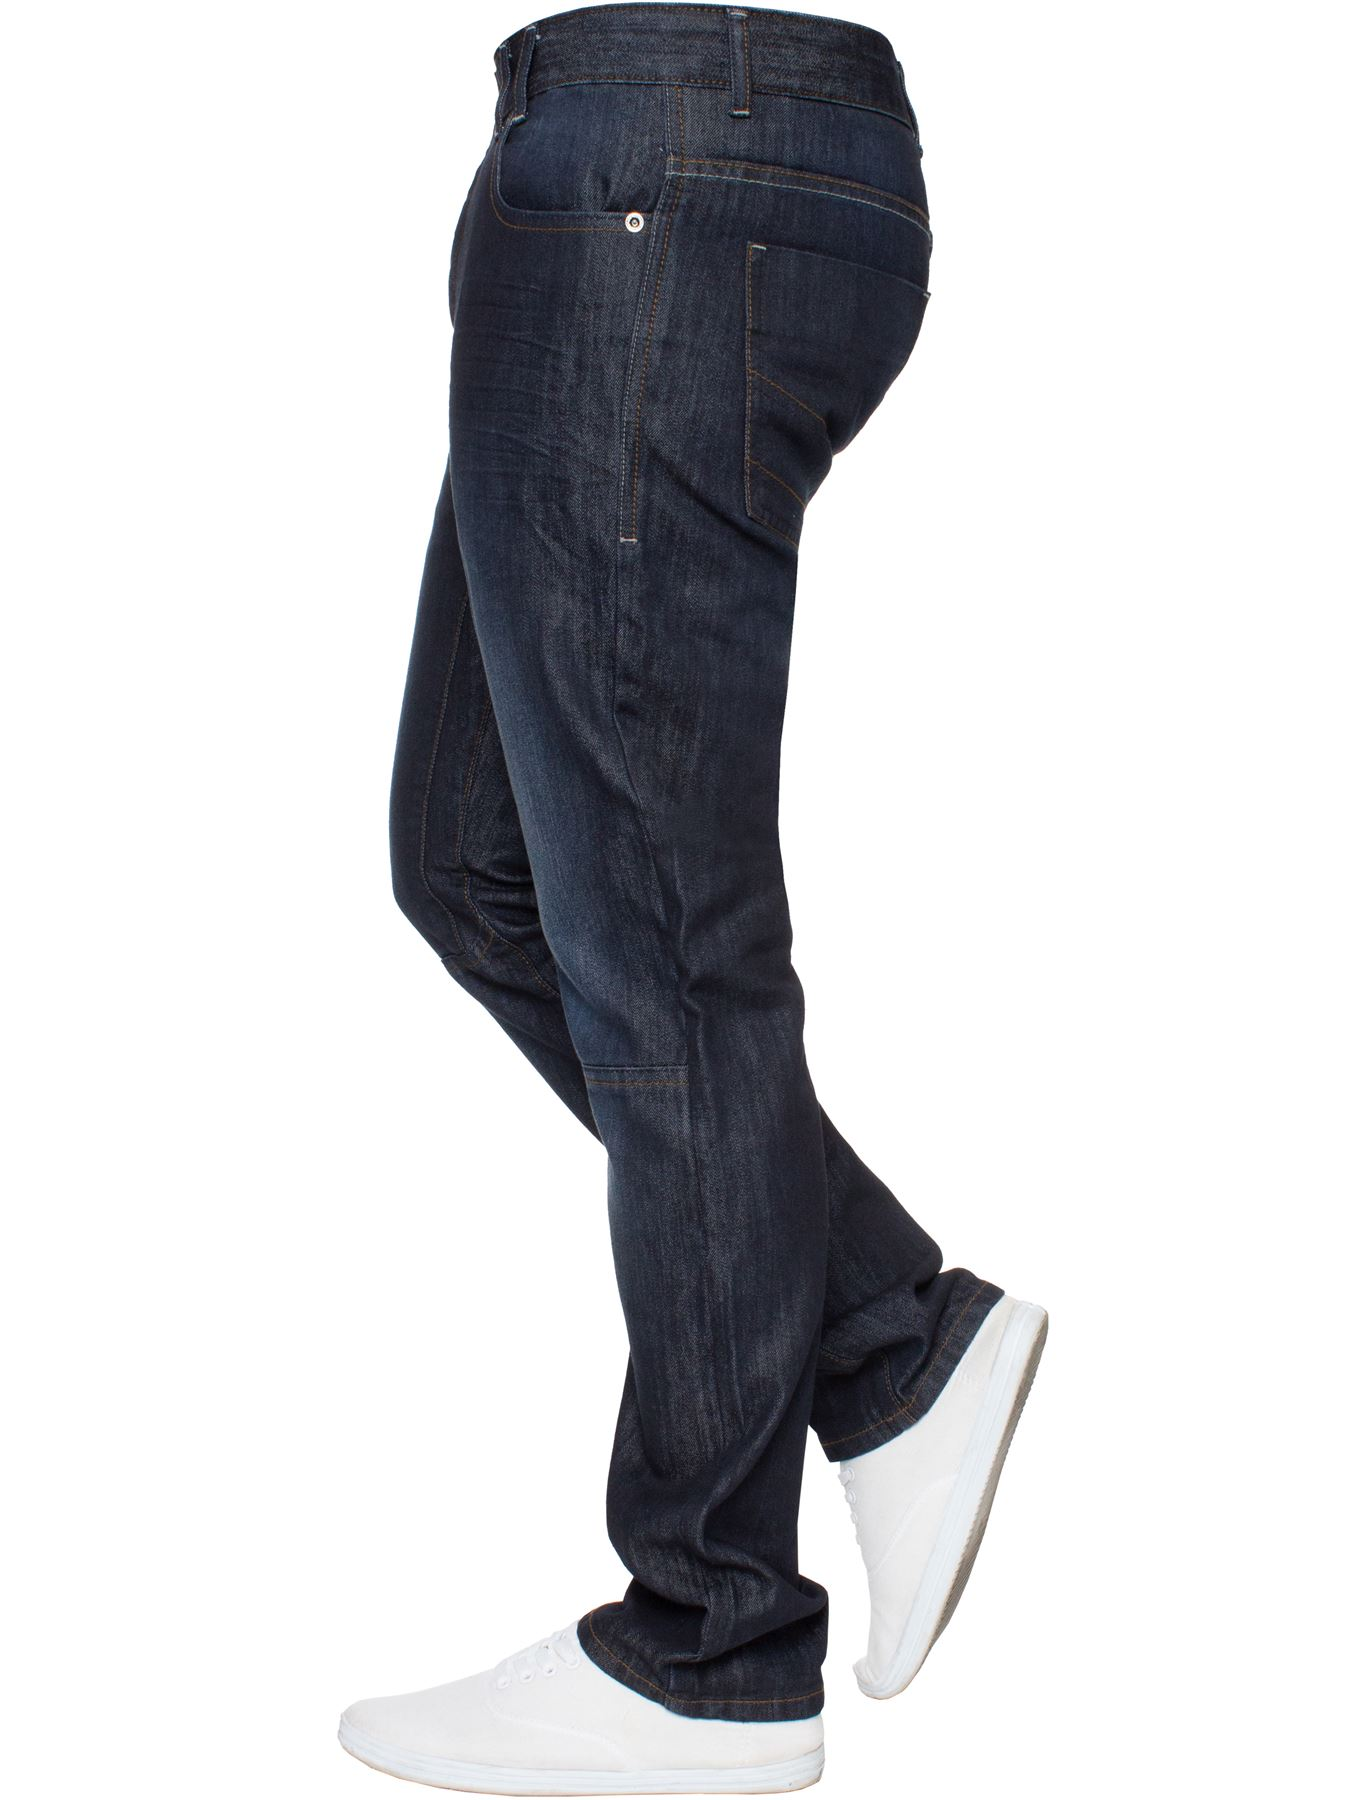 Enzo-Mens-Straight-Jeans-Regular-Leg-Designer-Work-Denim-Pants-All-Waists-Sizes thumbnail 36